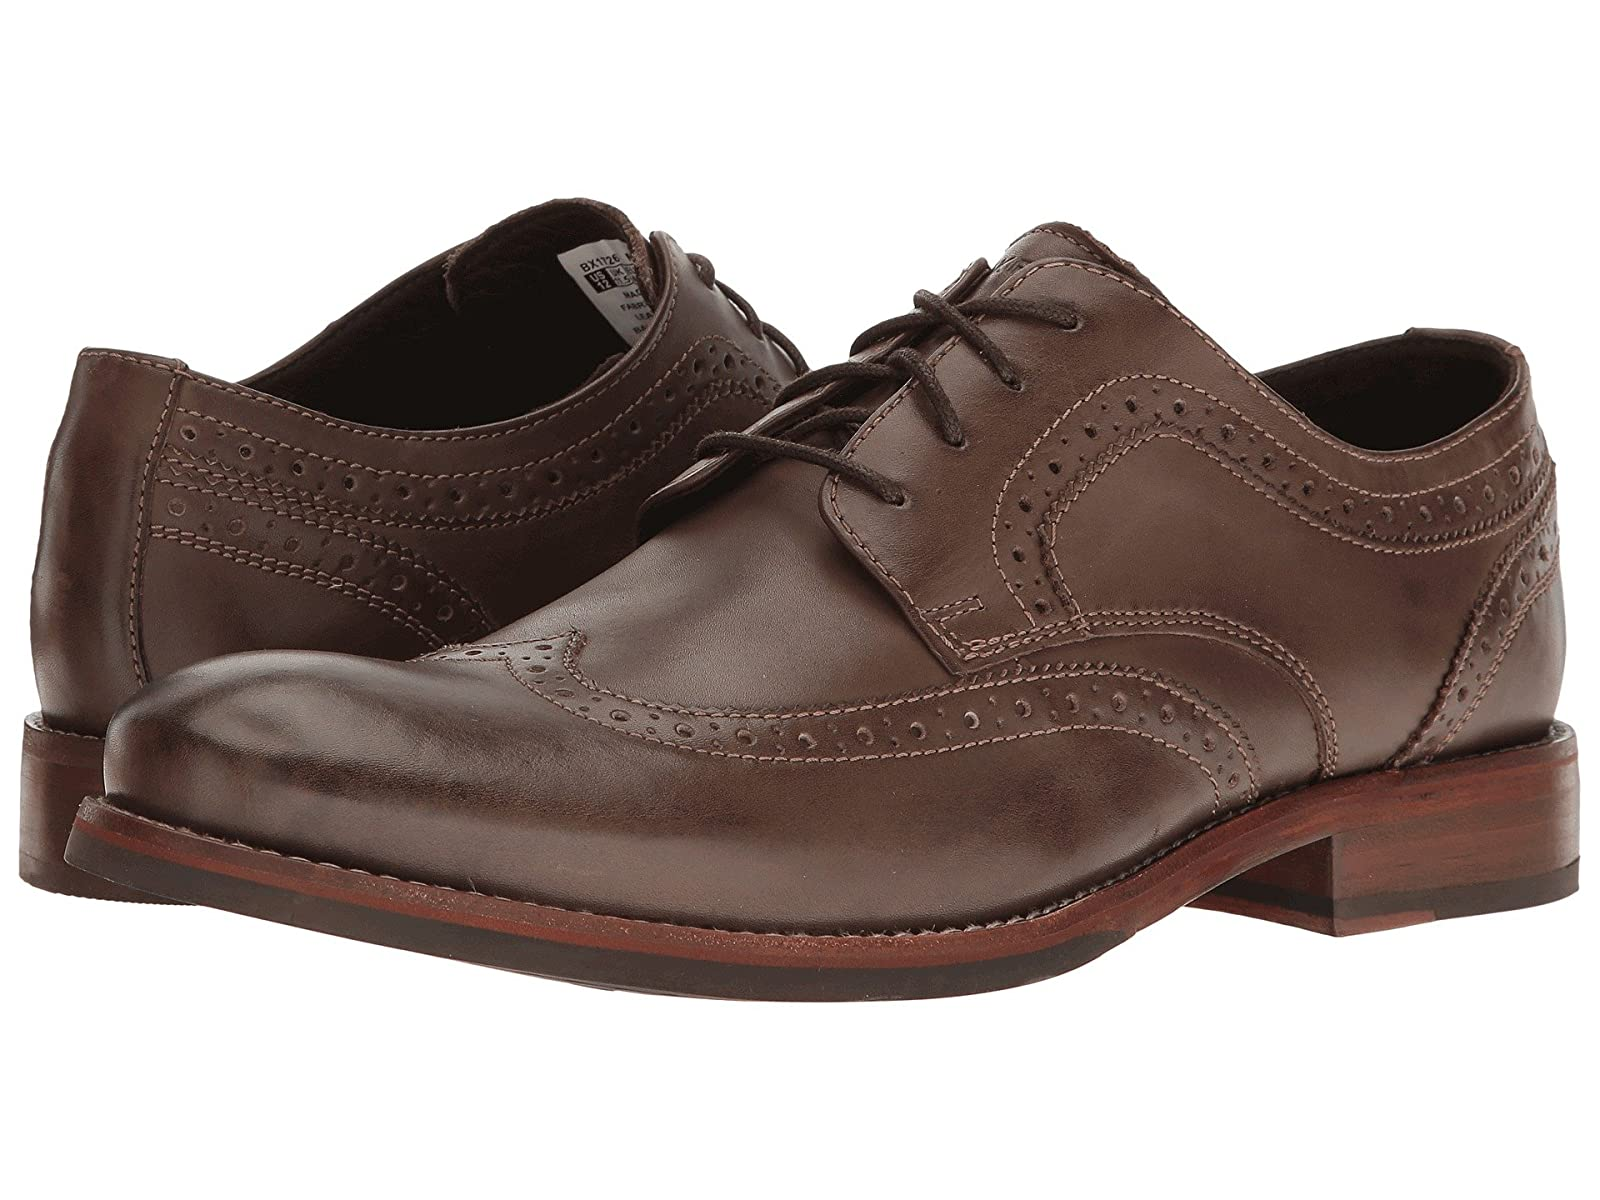 Rockport Wyat Wingtip OxfordCheap and distinctive eye-catching shoes